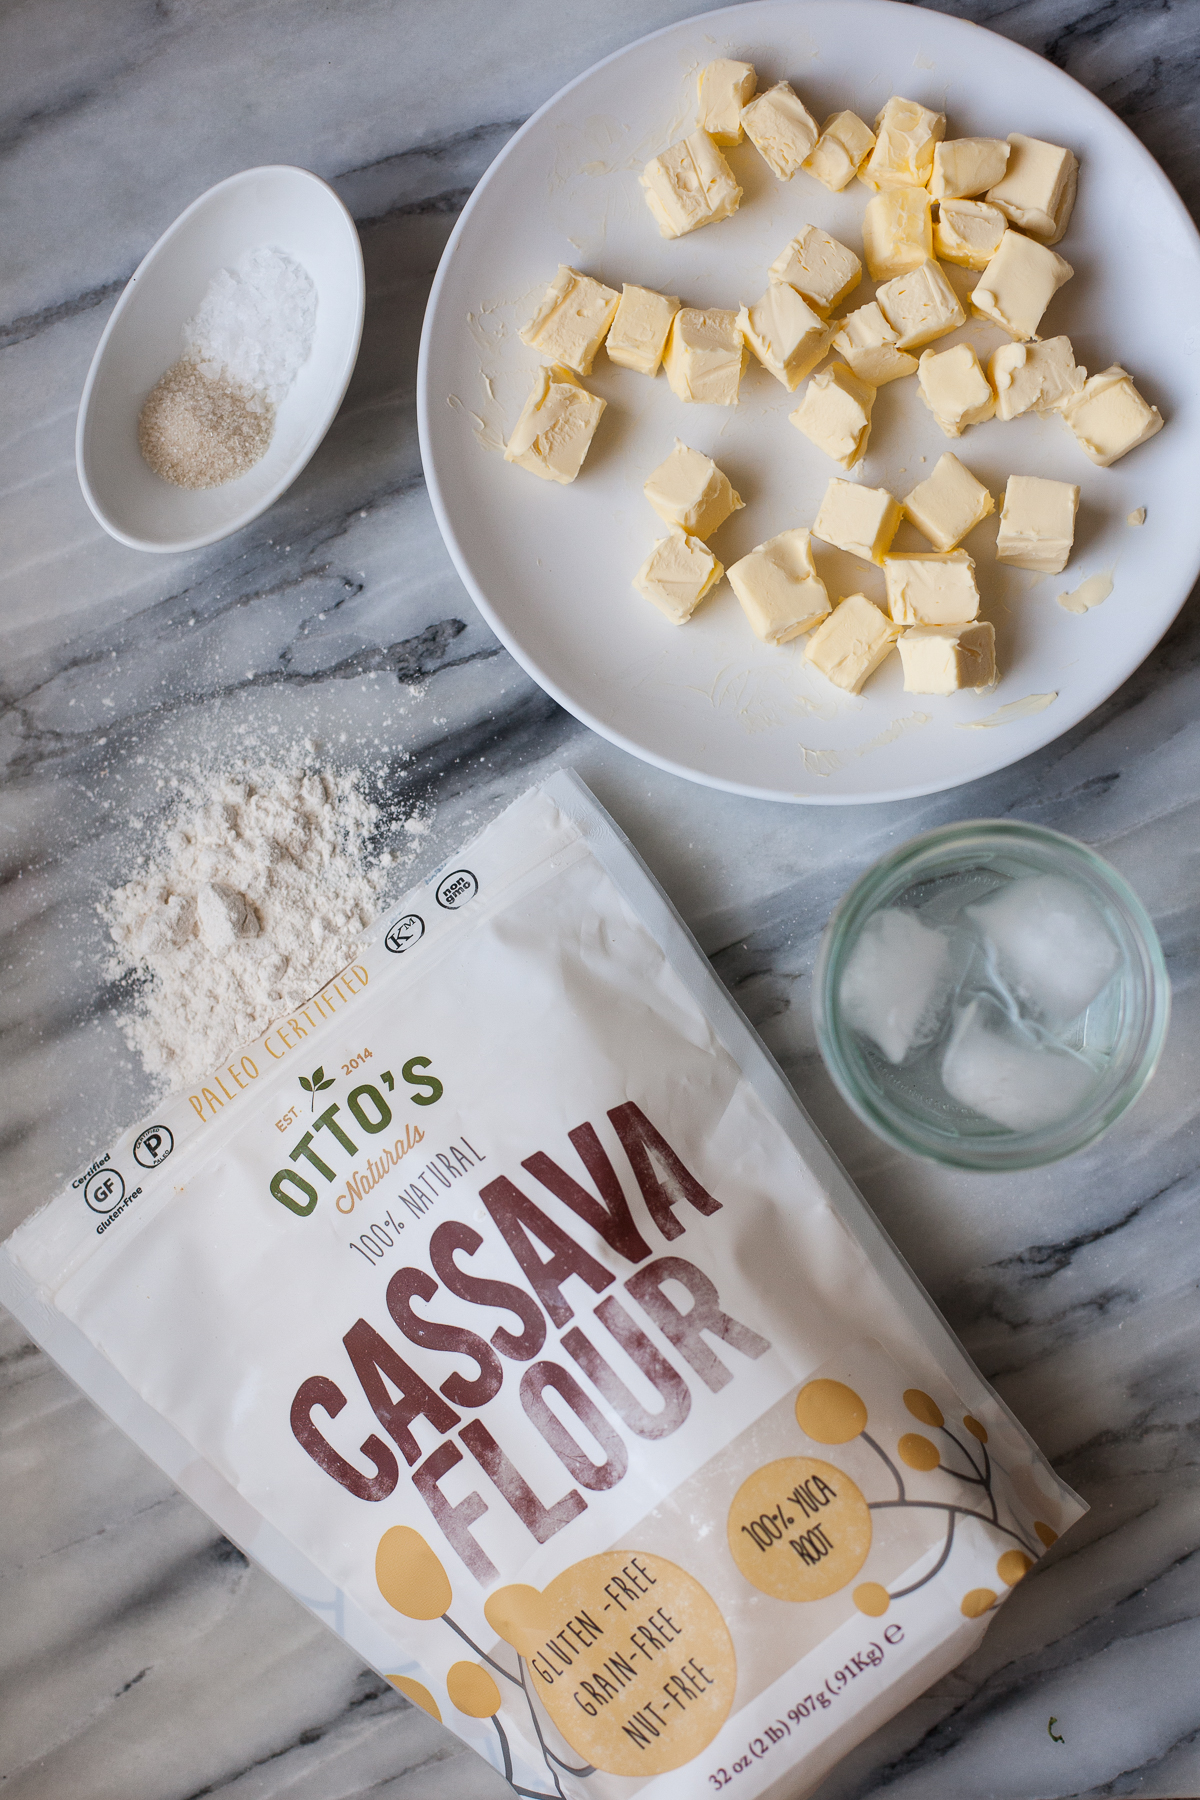 Ingredients for cassava flour pie crust